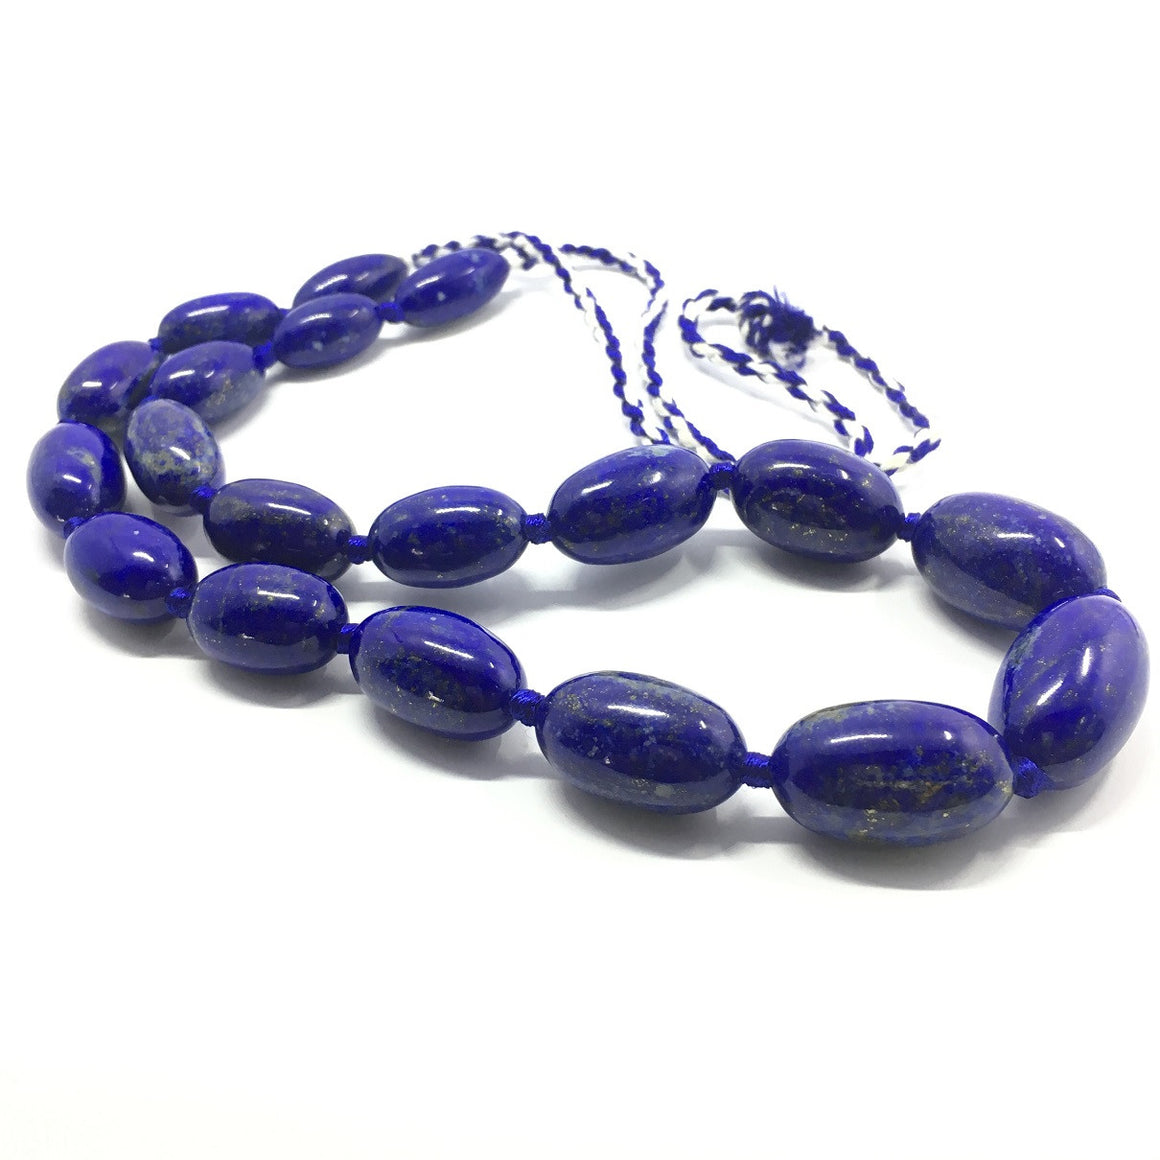 Lapis Lazuli Necklace - Lapis Necklace 19 Oval Beads - 649.0 ct